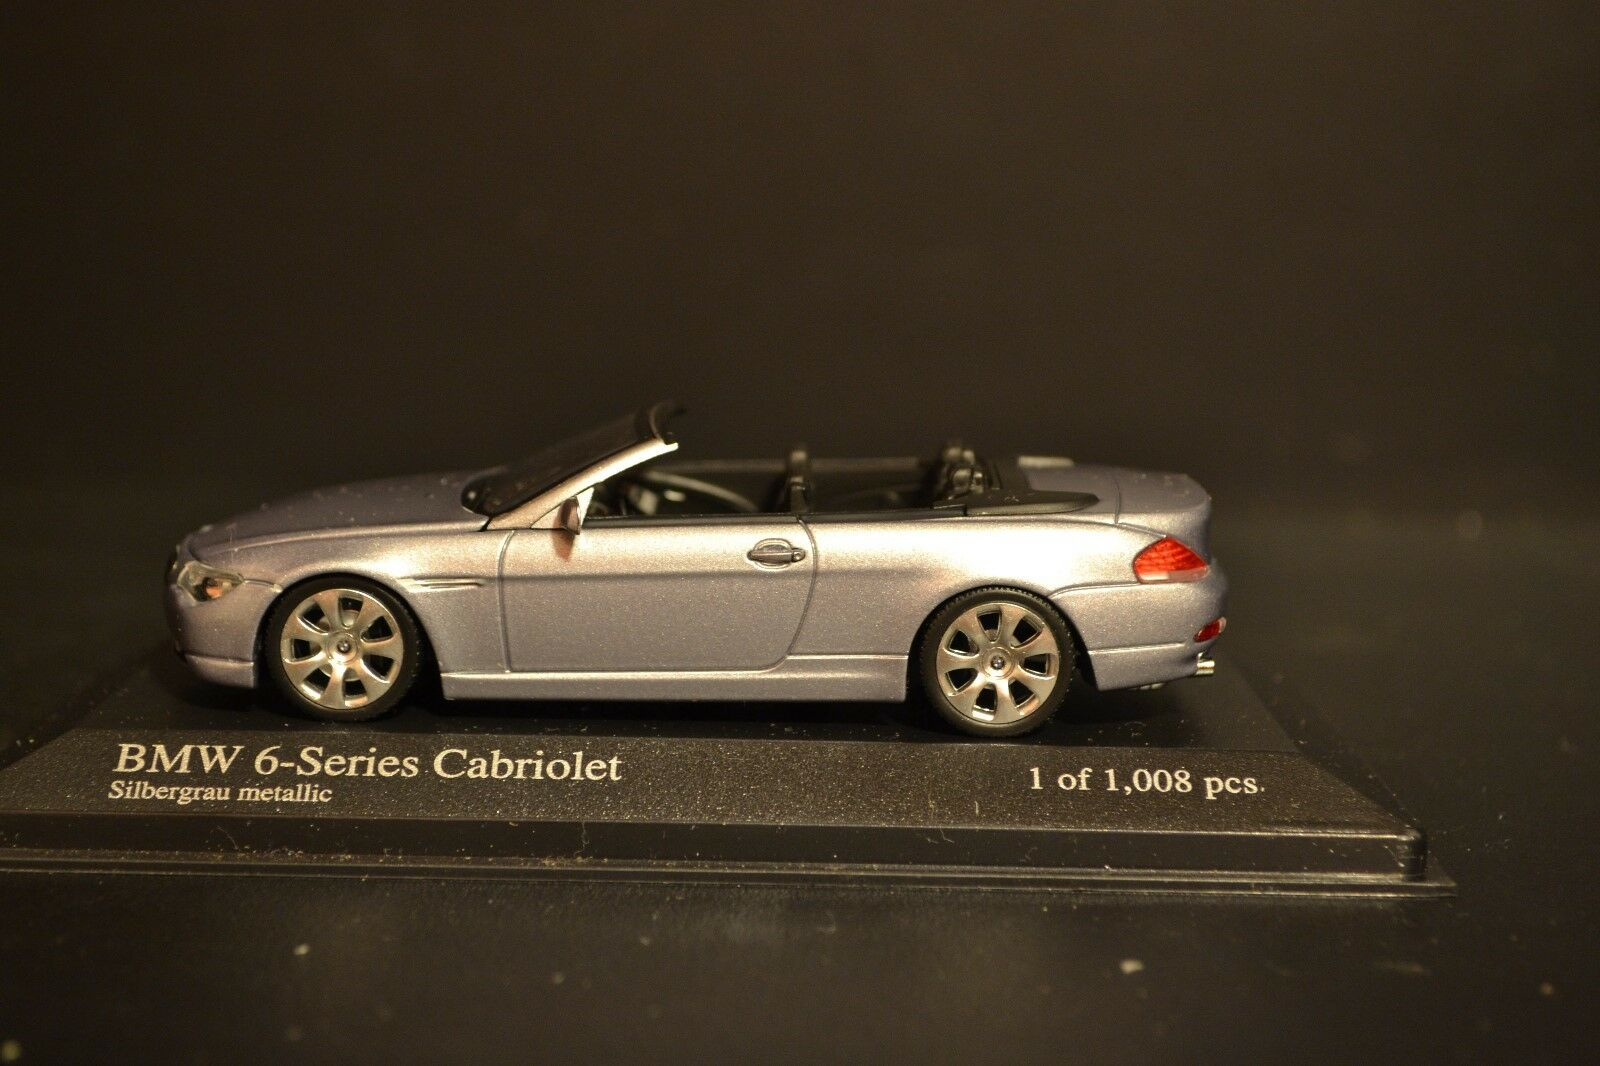 BMW 6-series Cabriolet Limited Edition Minichamps diecast vehicle in scale 1 43